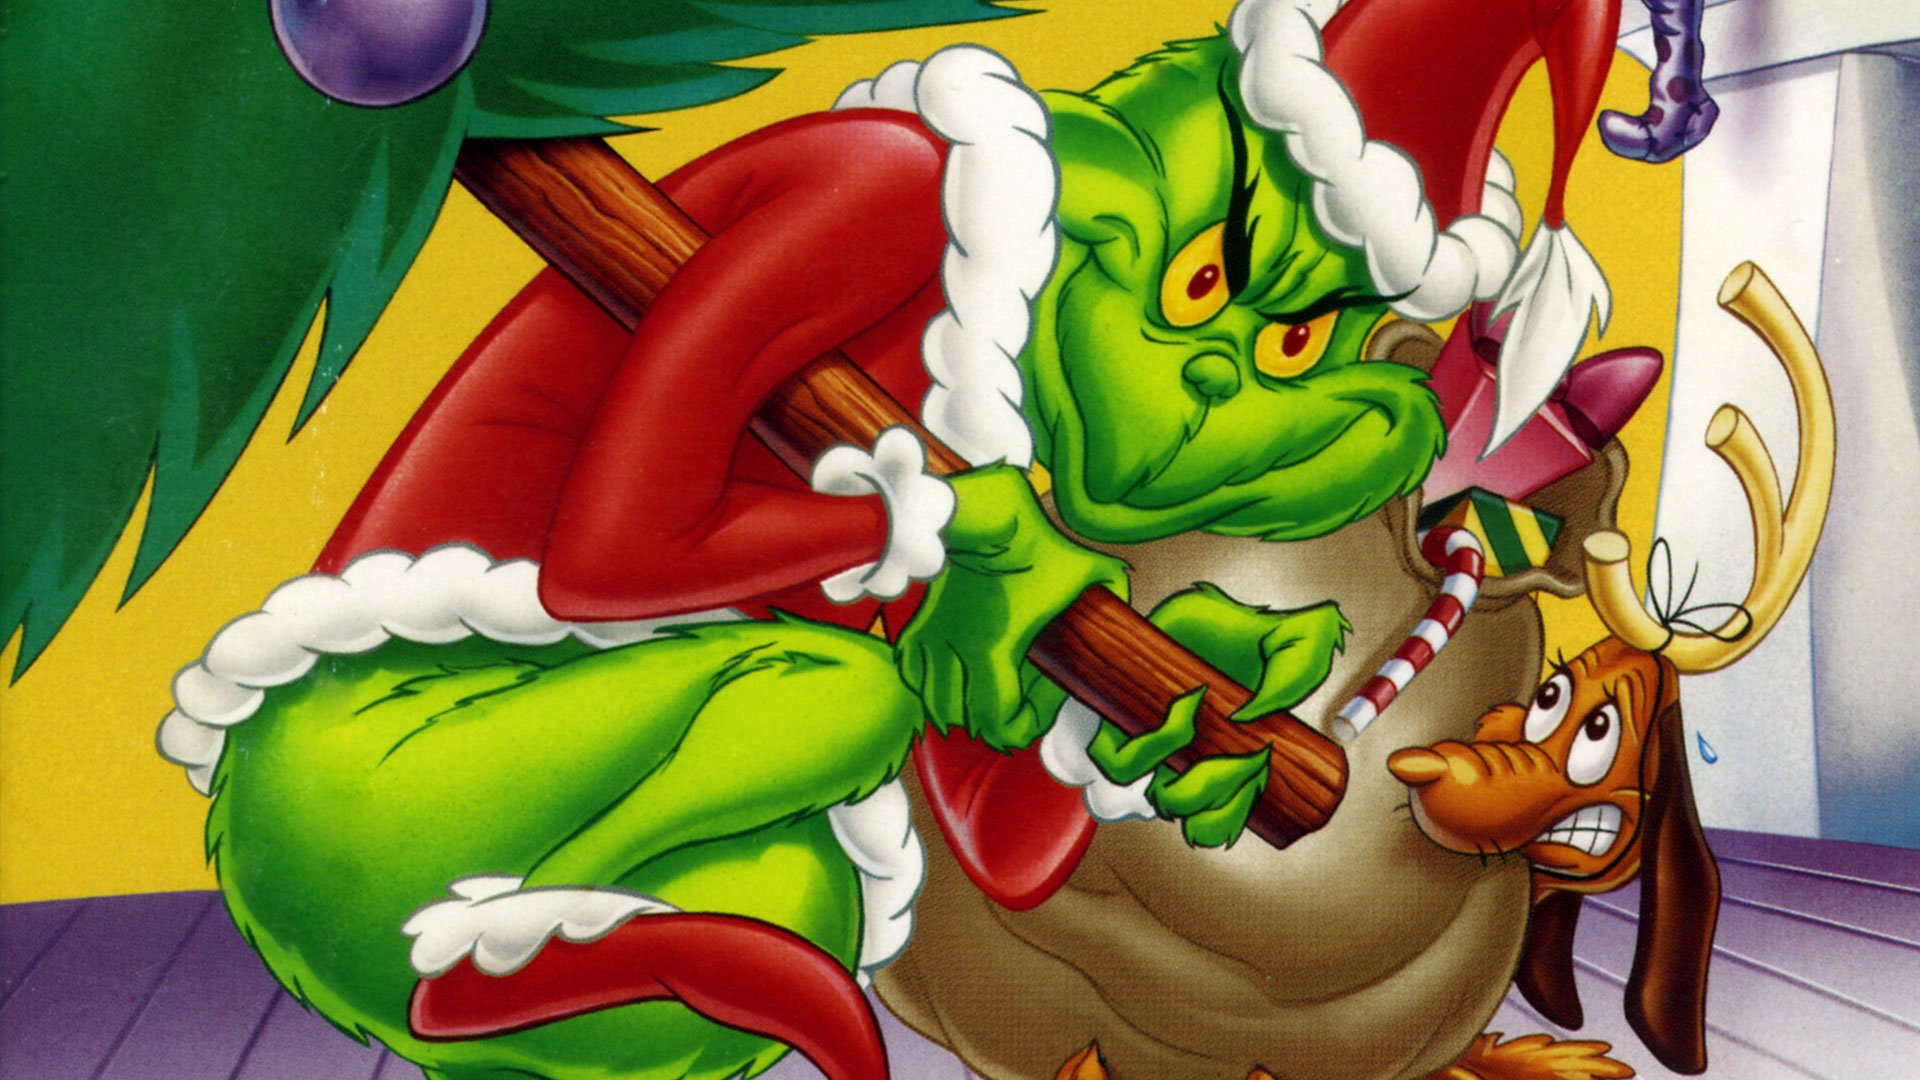 The-Grinch-suit-is-made-out-of-yak-hairs-that-were-dyed-green-and-sewed-onto-a-spandex-suit-one-by-o-wallpaper-wp38010936